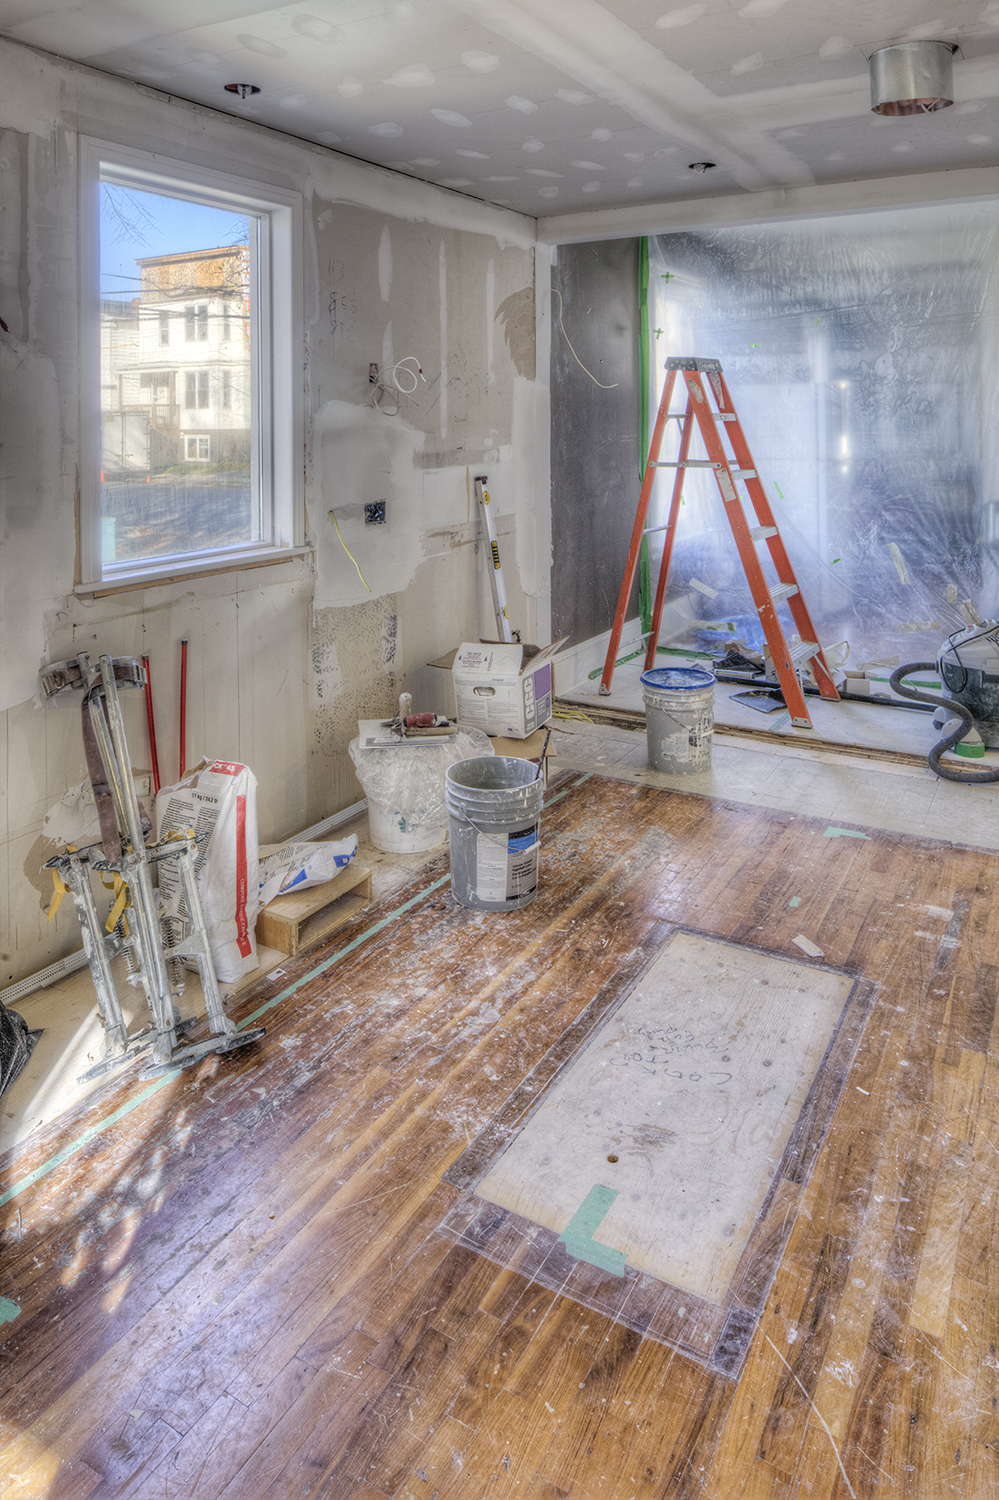 Kitchen being renovated